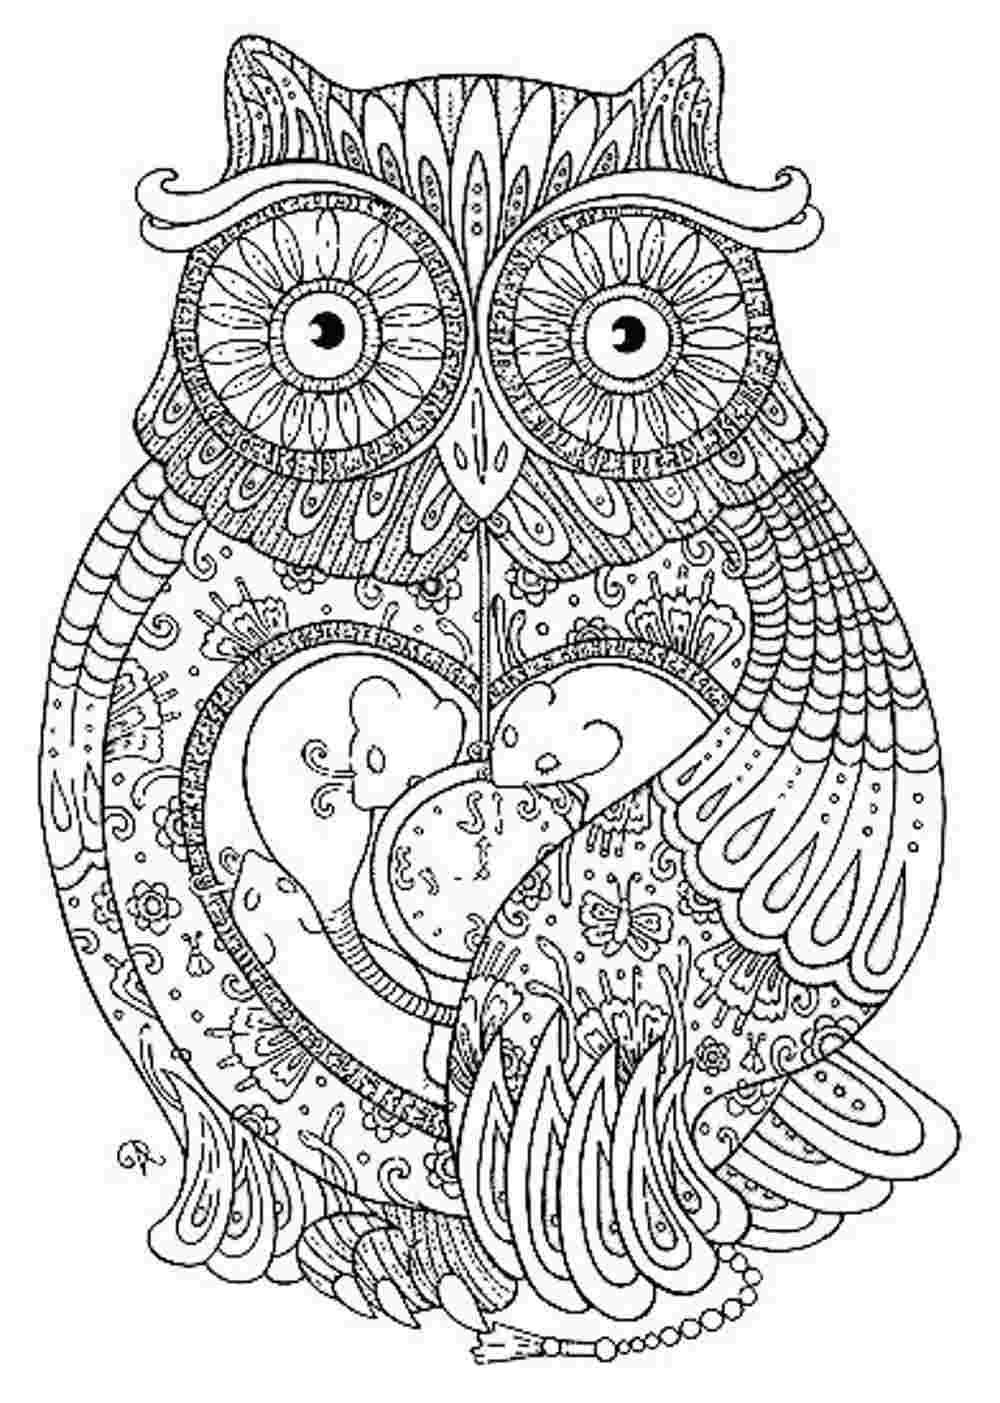 Colouring Owl Coloring Pages Detailed Coloring Pages Mandala Coloring Pages